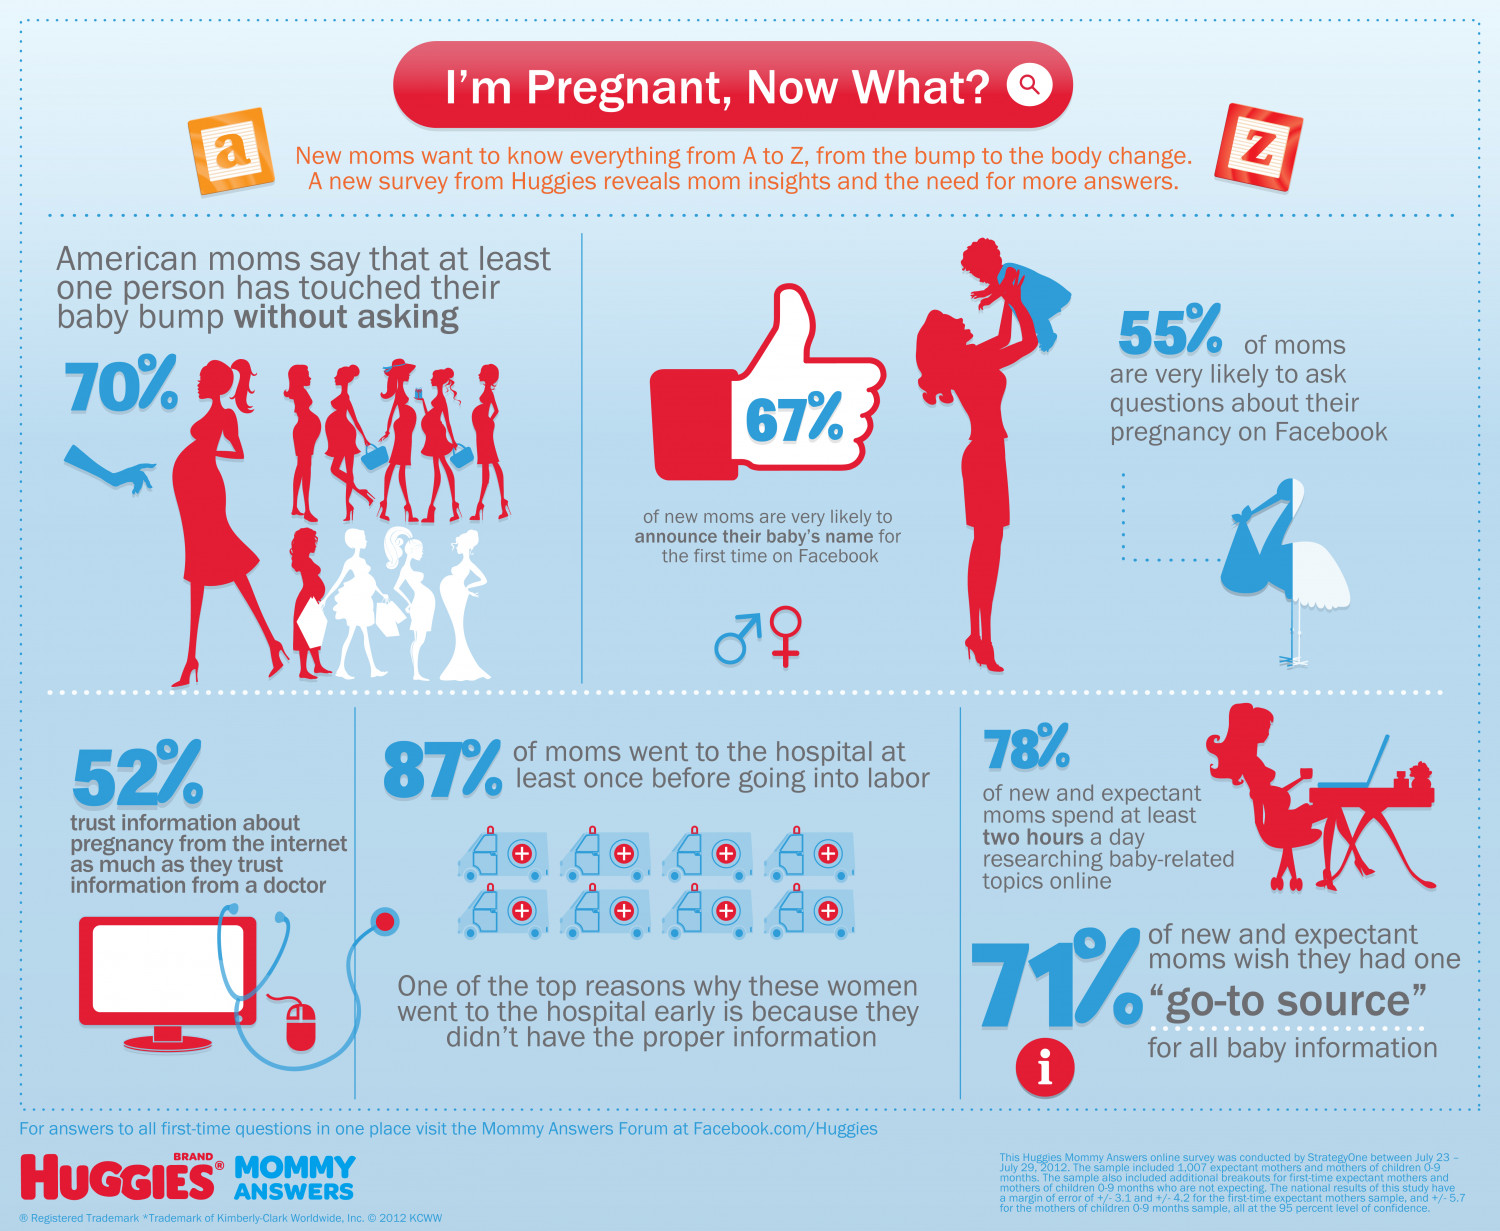 I'm Pregnant, Now What? Infographic